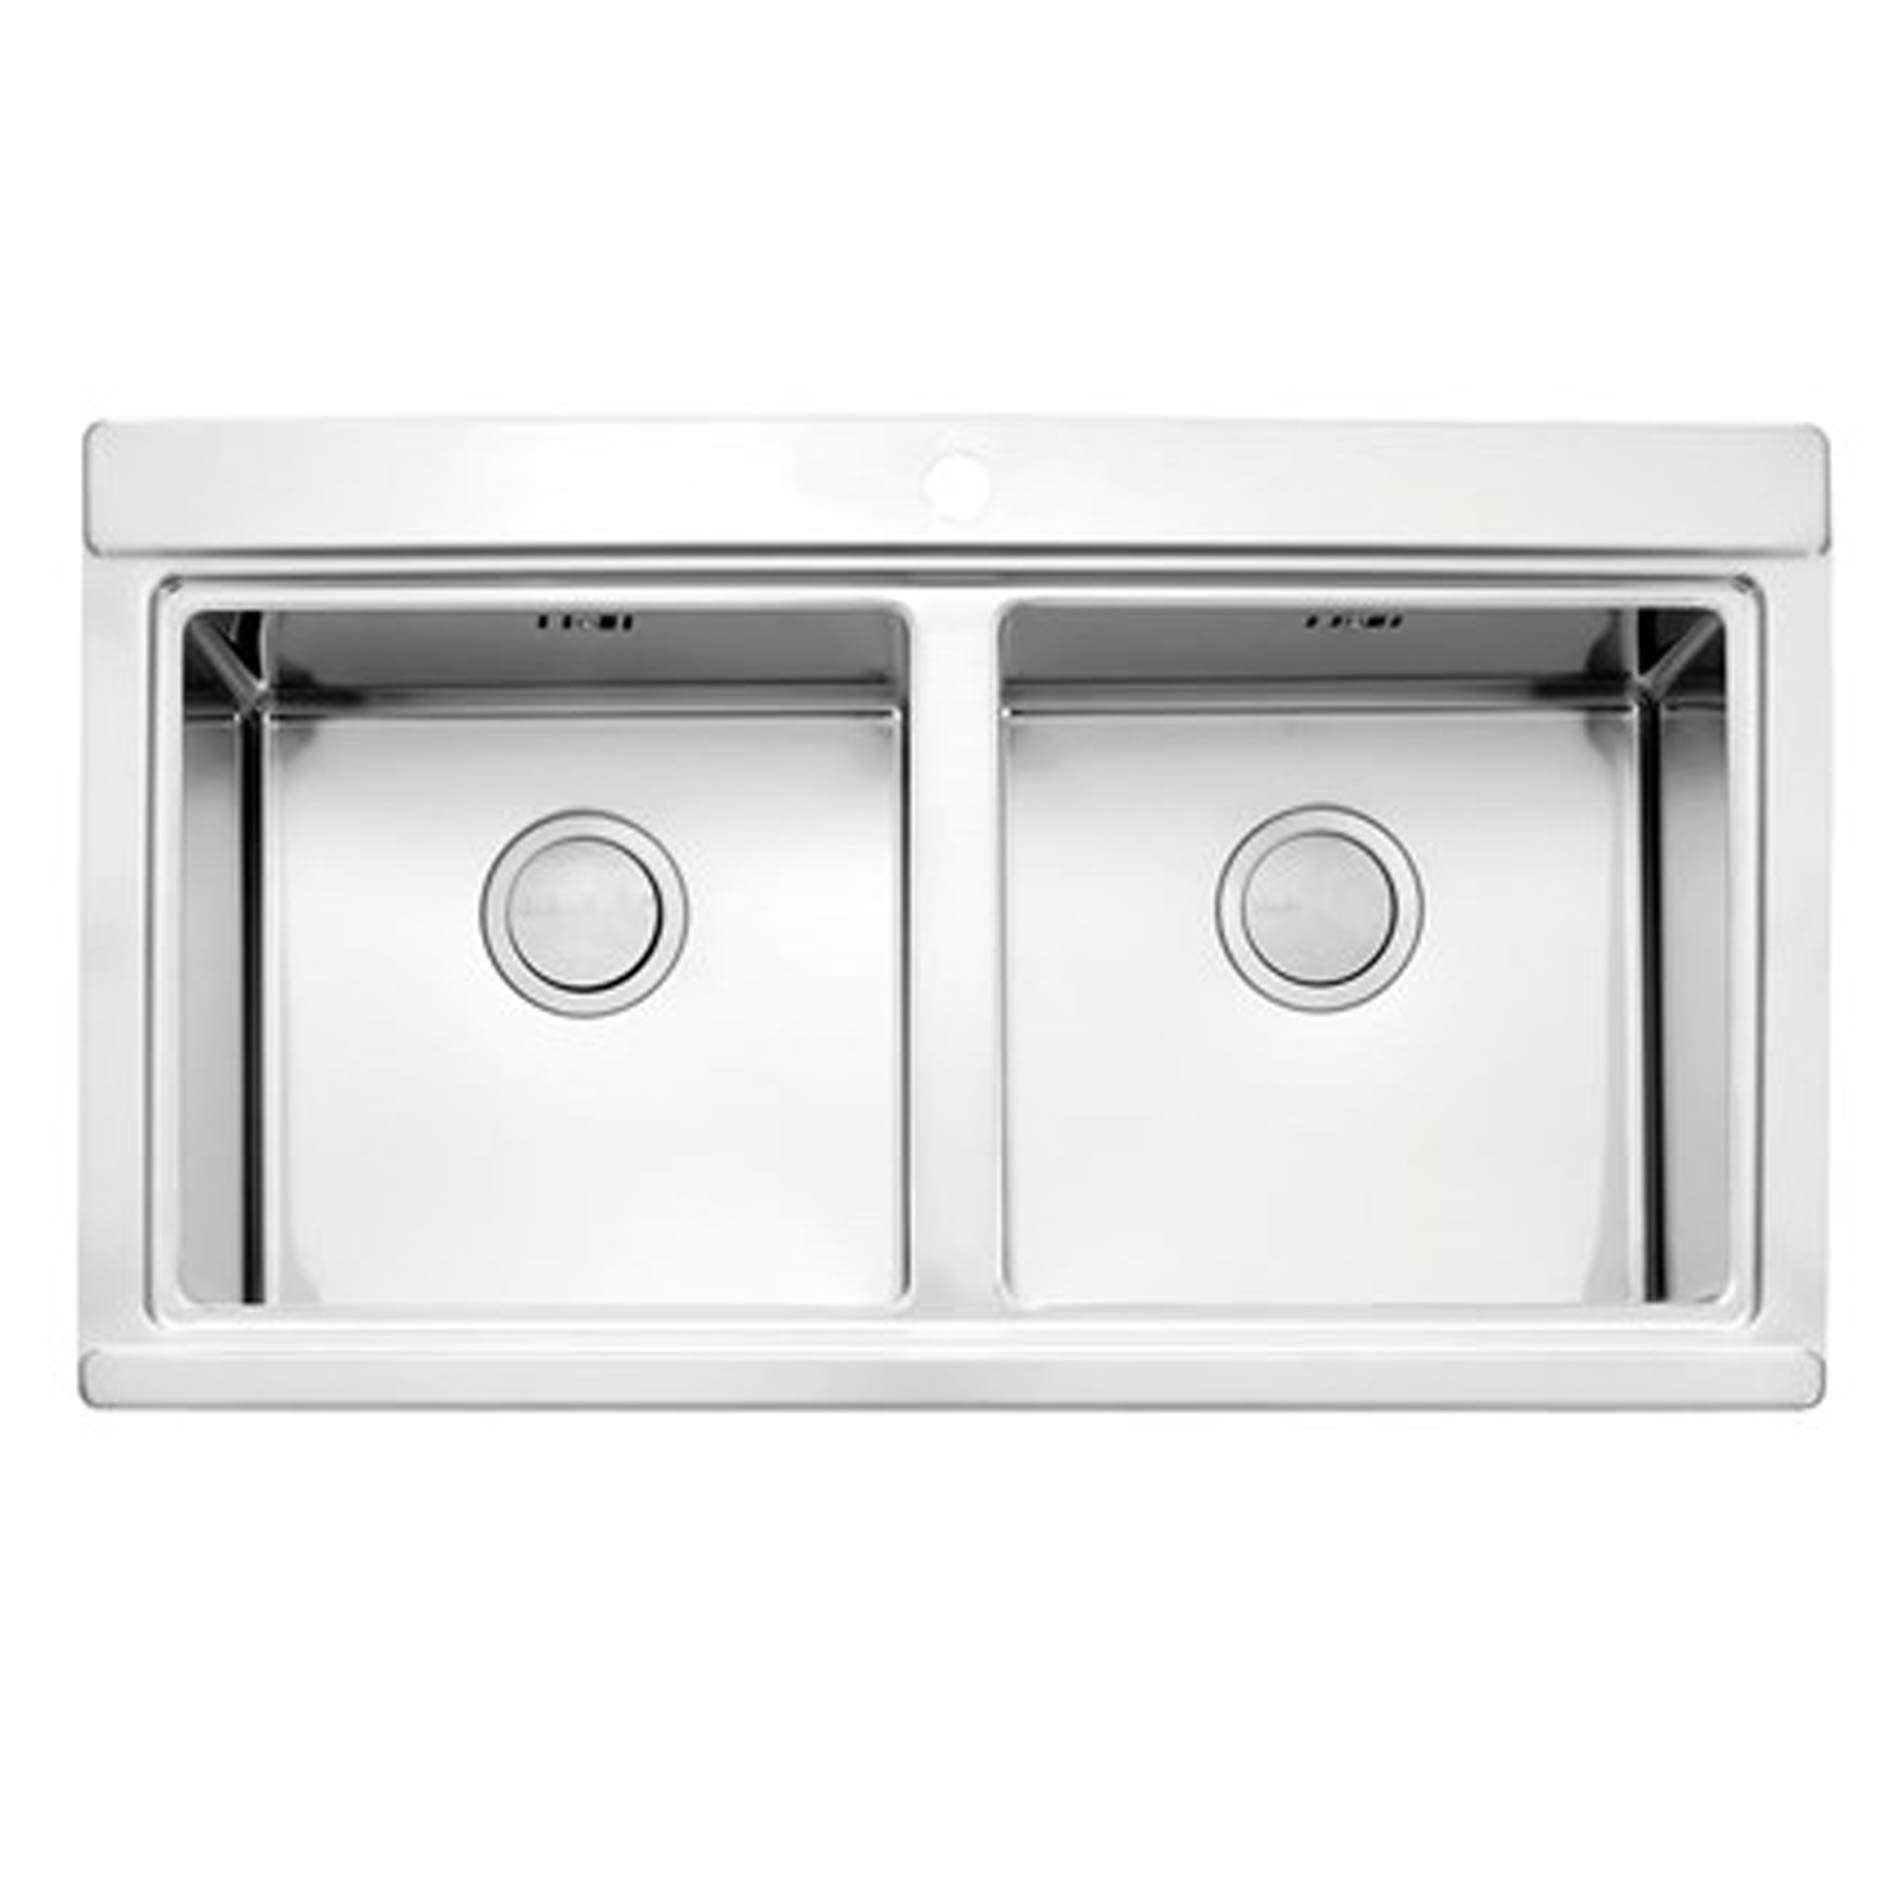 Stainless Steel Double Sink Clearwater Glacier Double Bowl Stainless Steel Sink